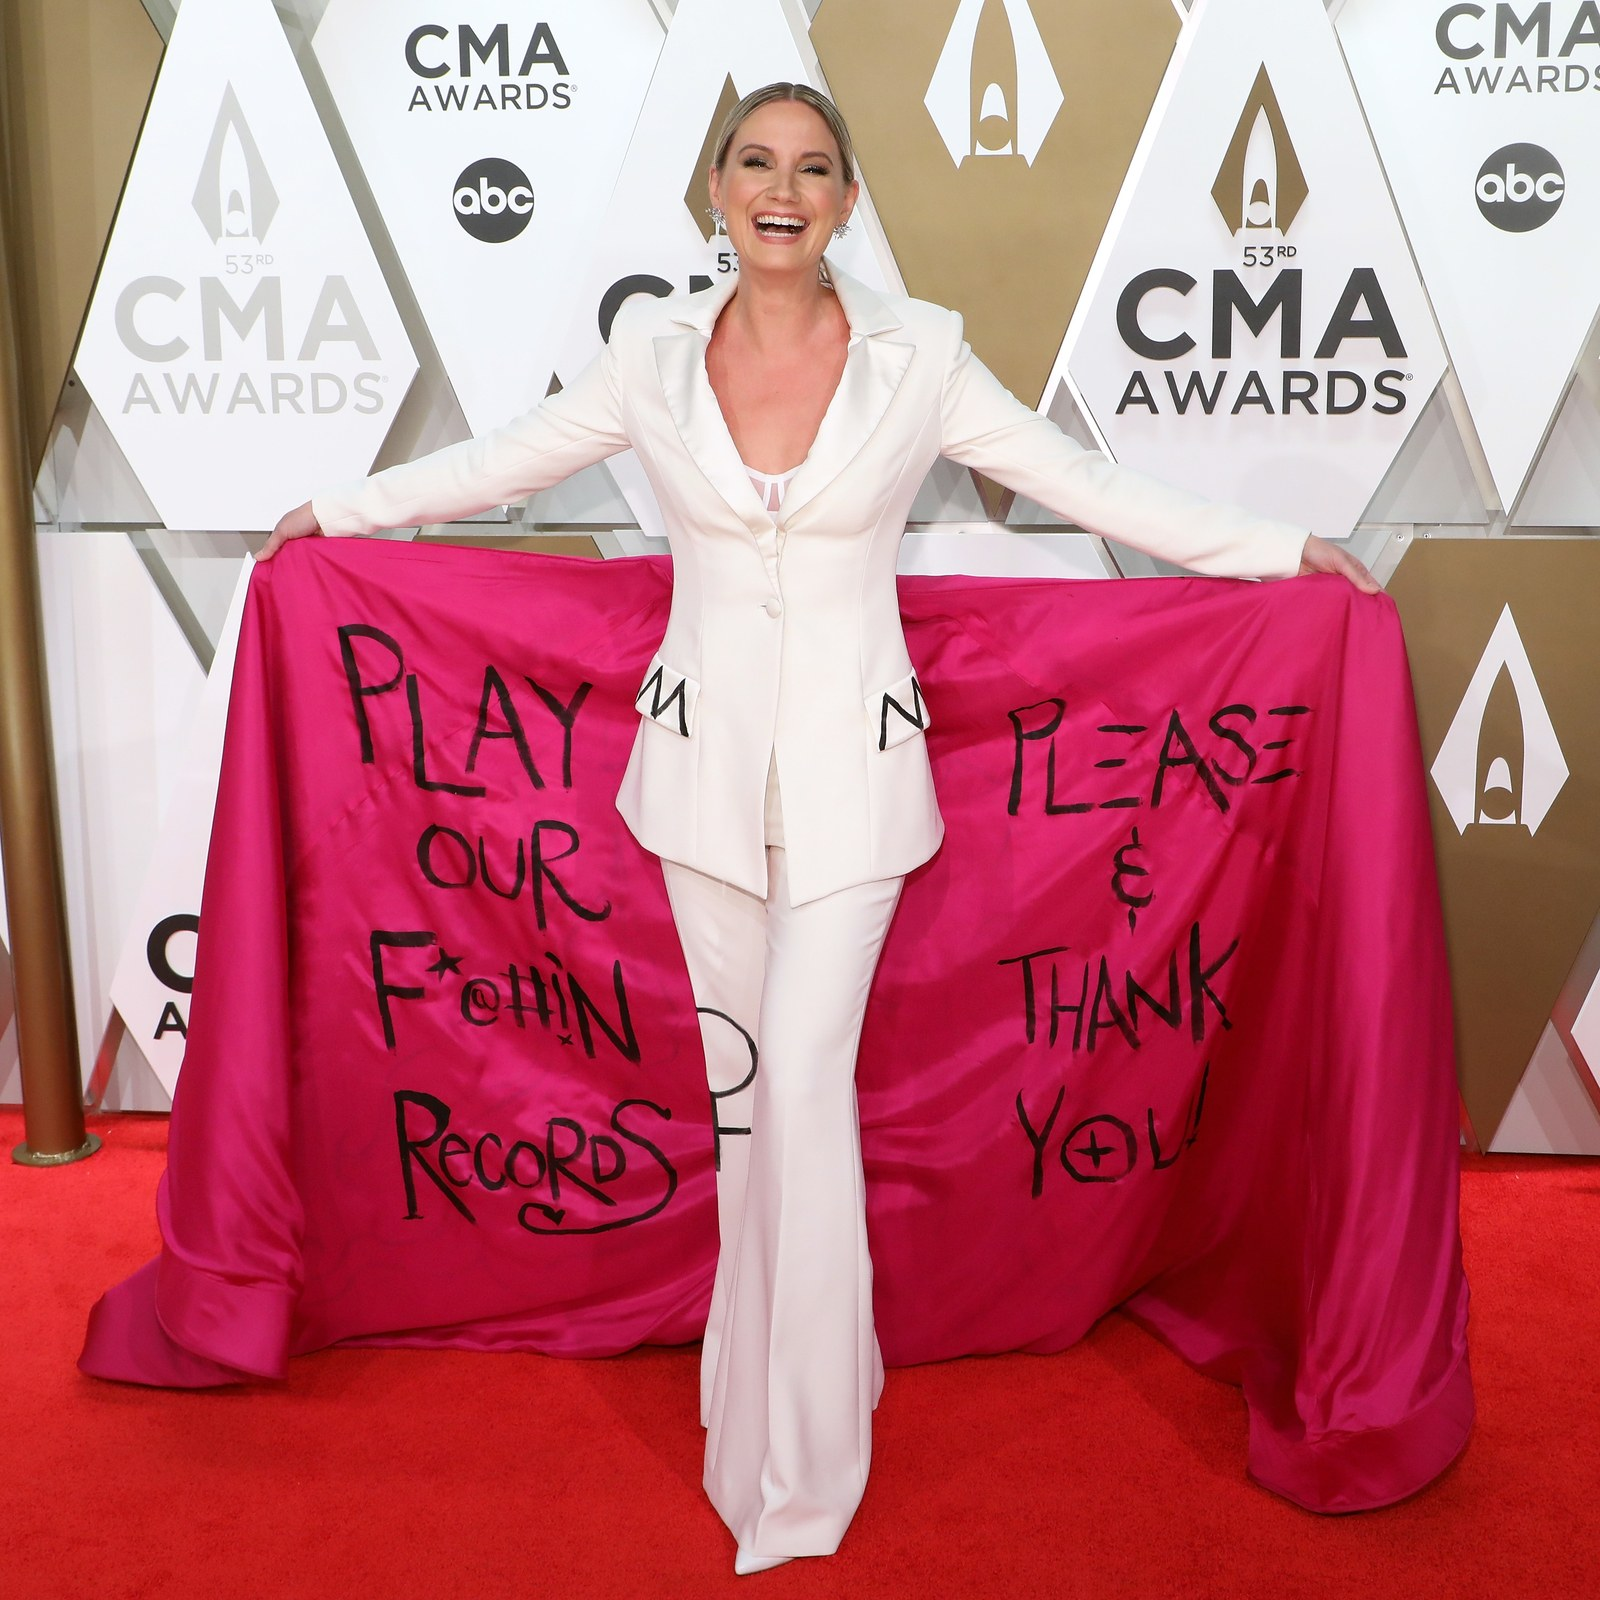 Jennifer Nettles attends the 53nd annual CMA Awards at Bridgestone Arena on November 13 2019 in Nashville Tennessee.